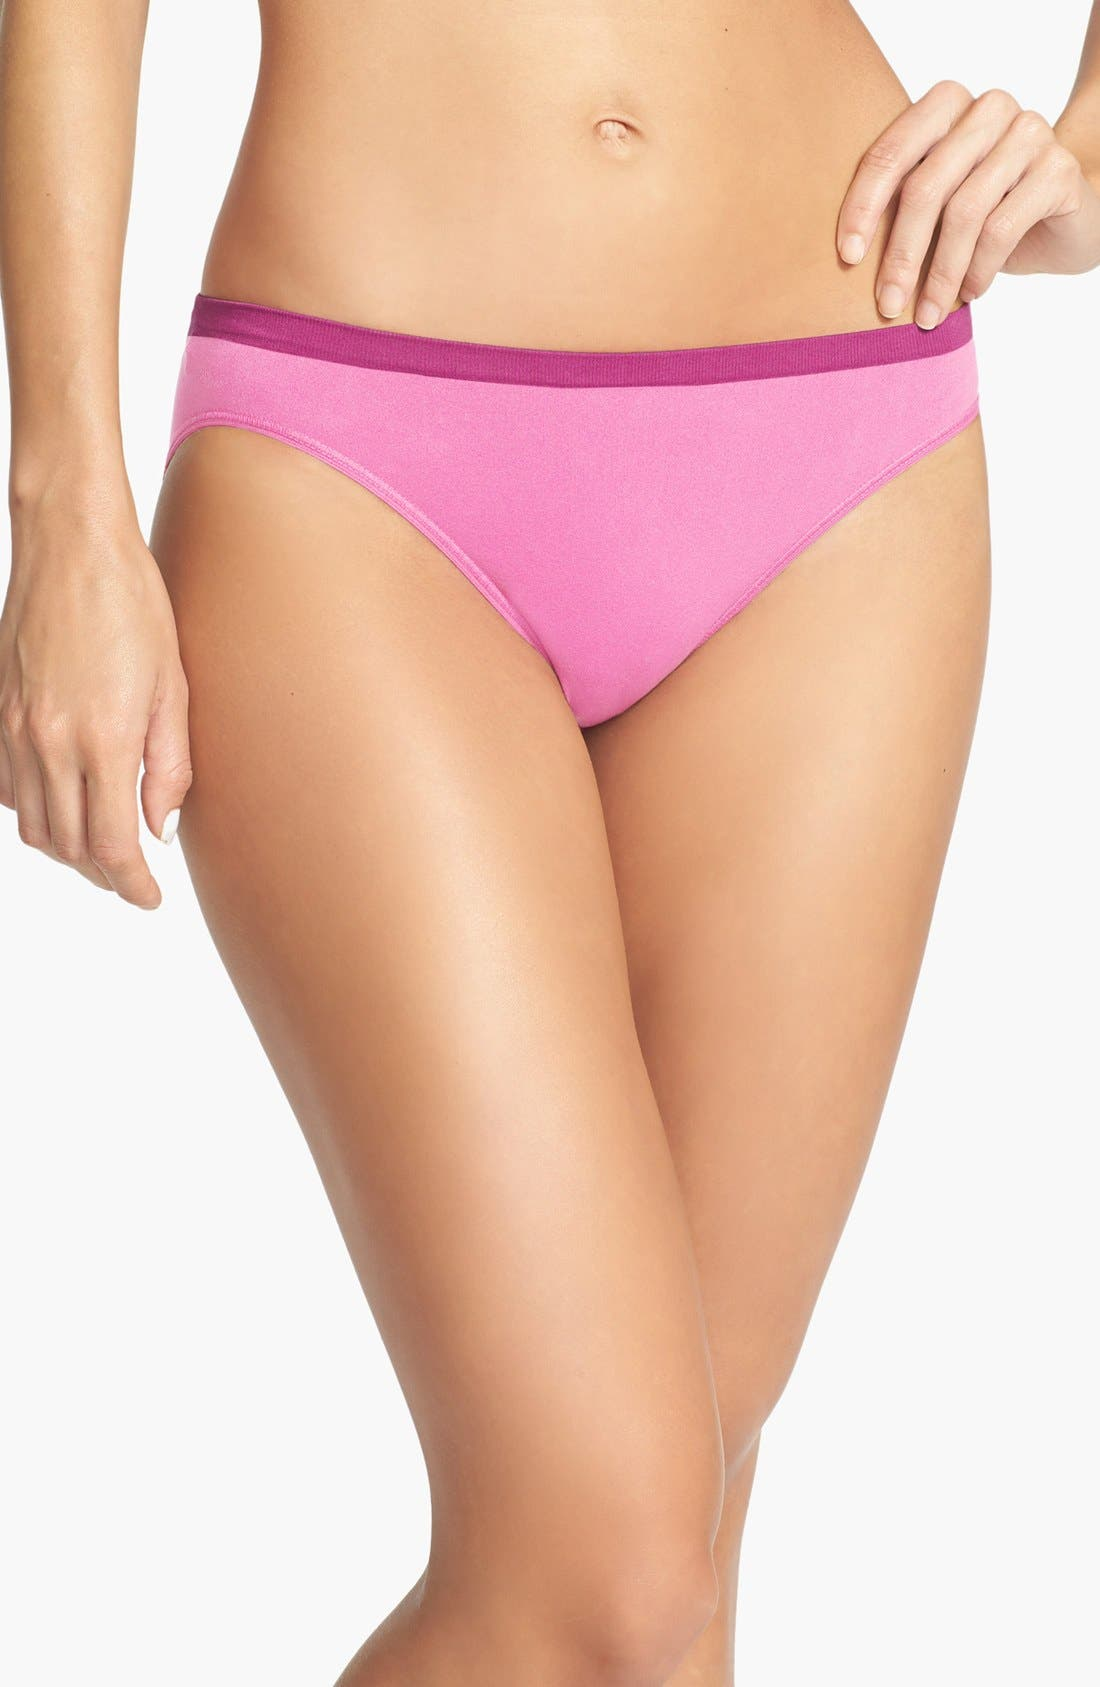 Alternate Image 1 Selected - Shimera Seamless Colorblock High Cut Briefs